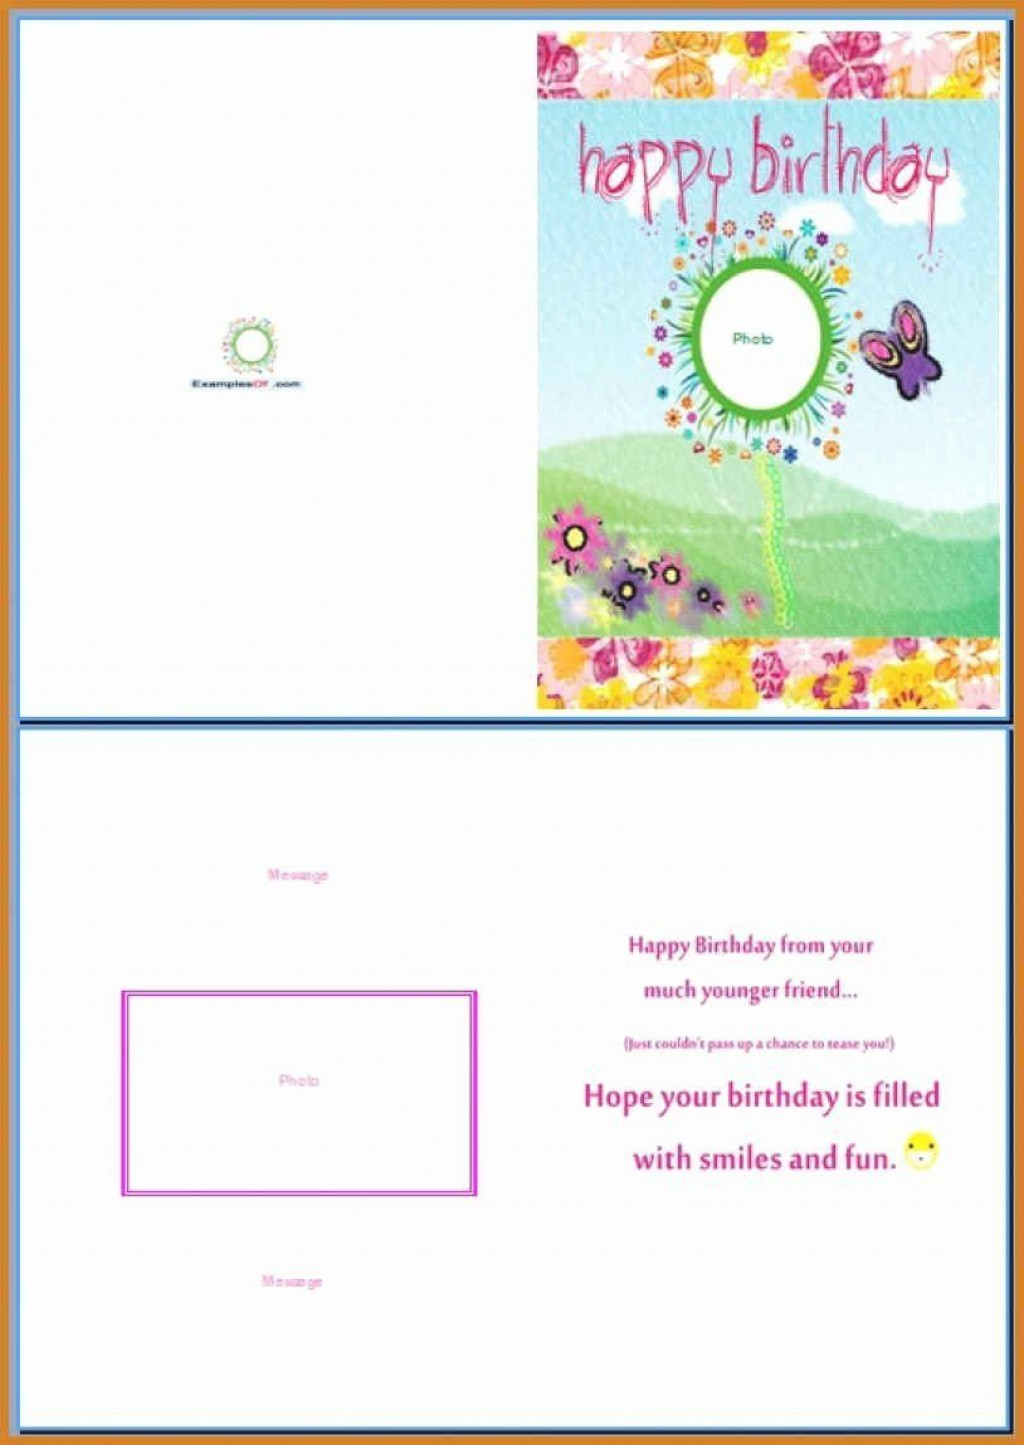 006 Amazing Birthday Card Template Word Highest Clarity  Blank Greeting Microsoft 2010Large